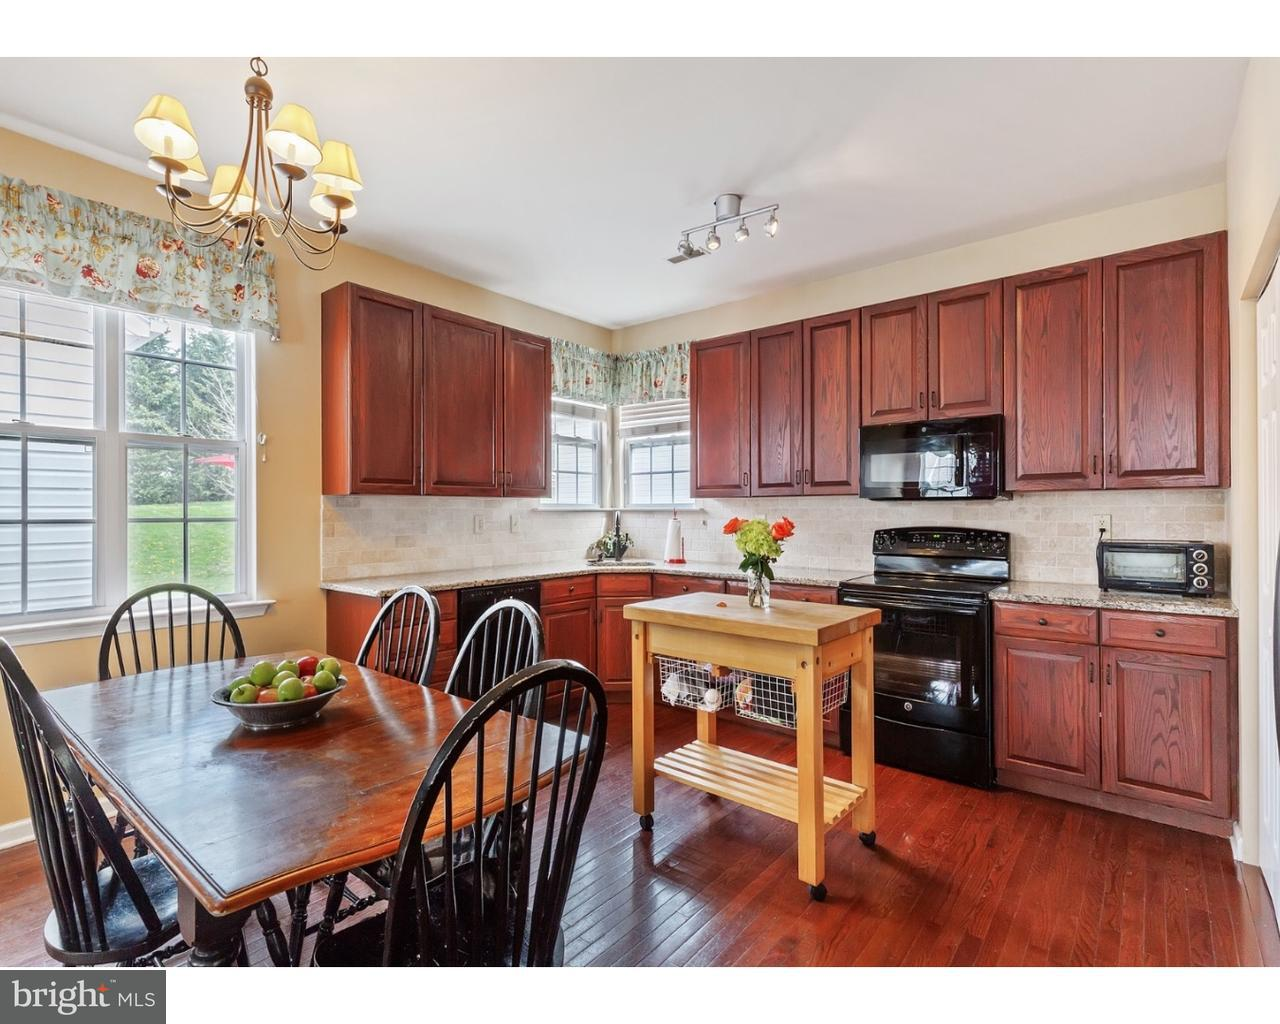 233 BEAUMONT DR, OXFORD - Listed at $287,999, OXFORD